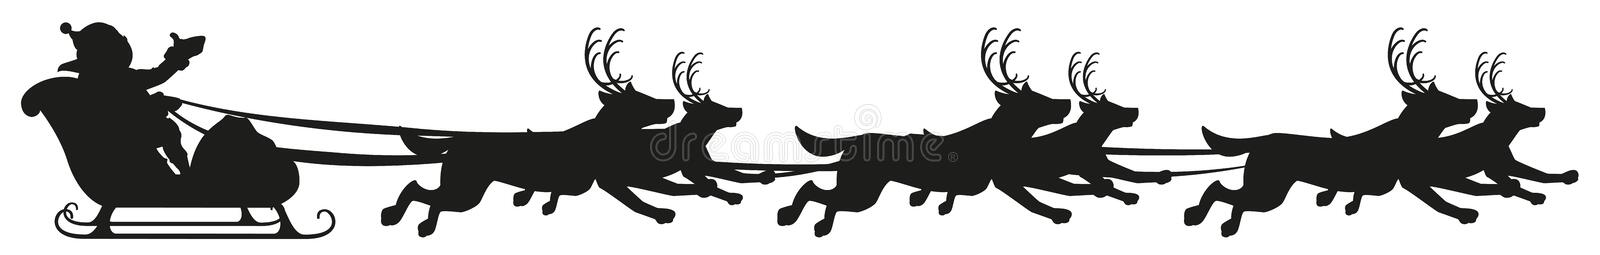 Santa riding dog sled ride. Black silhouette of dogs with horns of deer. Isolated on white vector illustration vector illustration